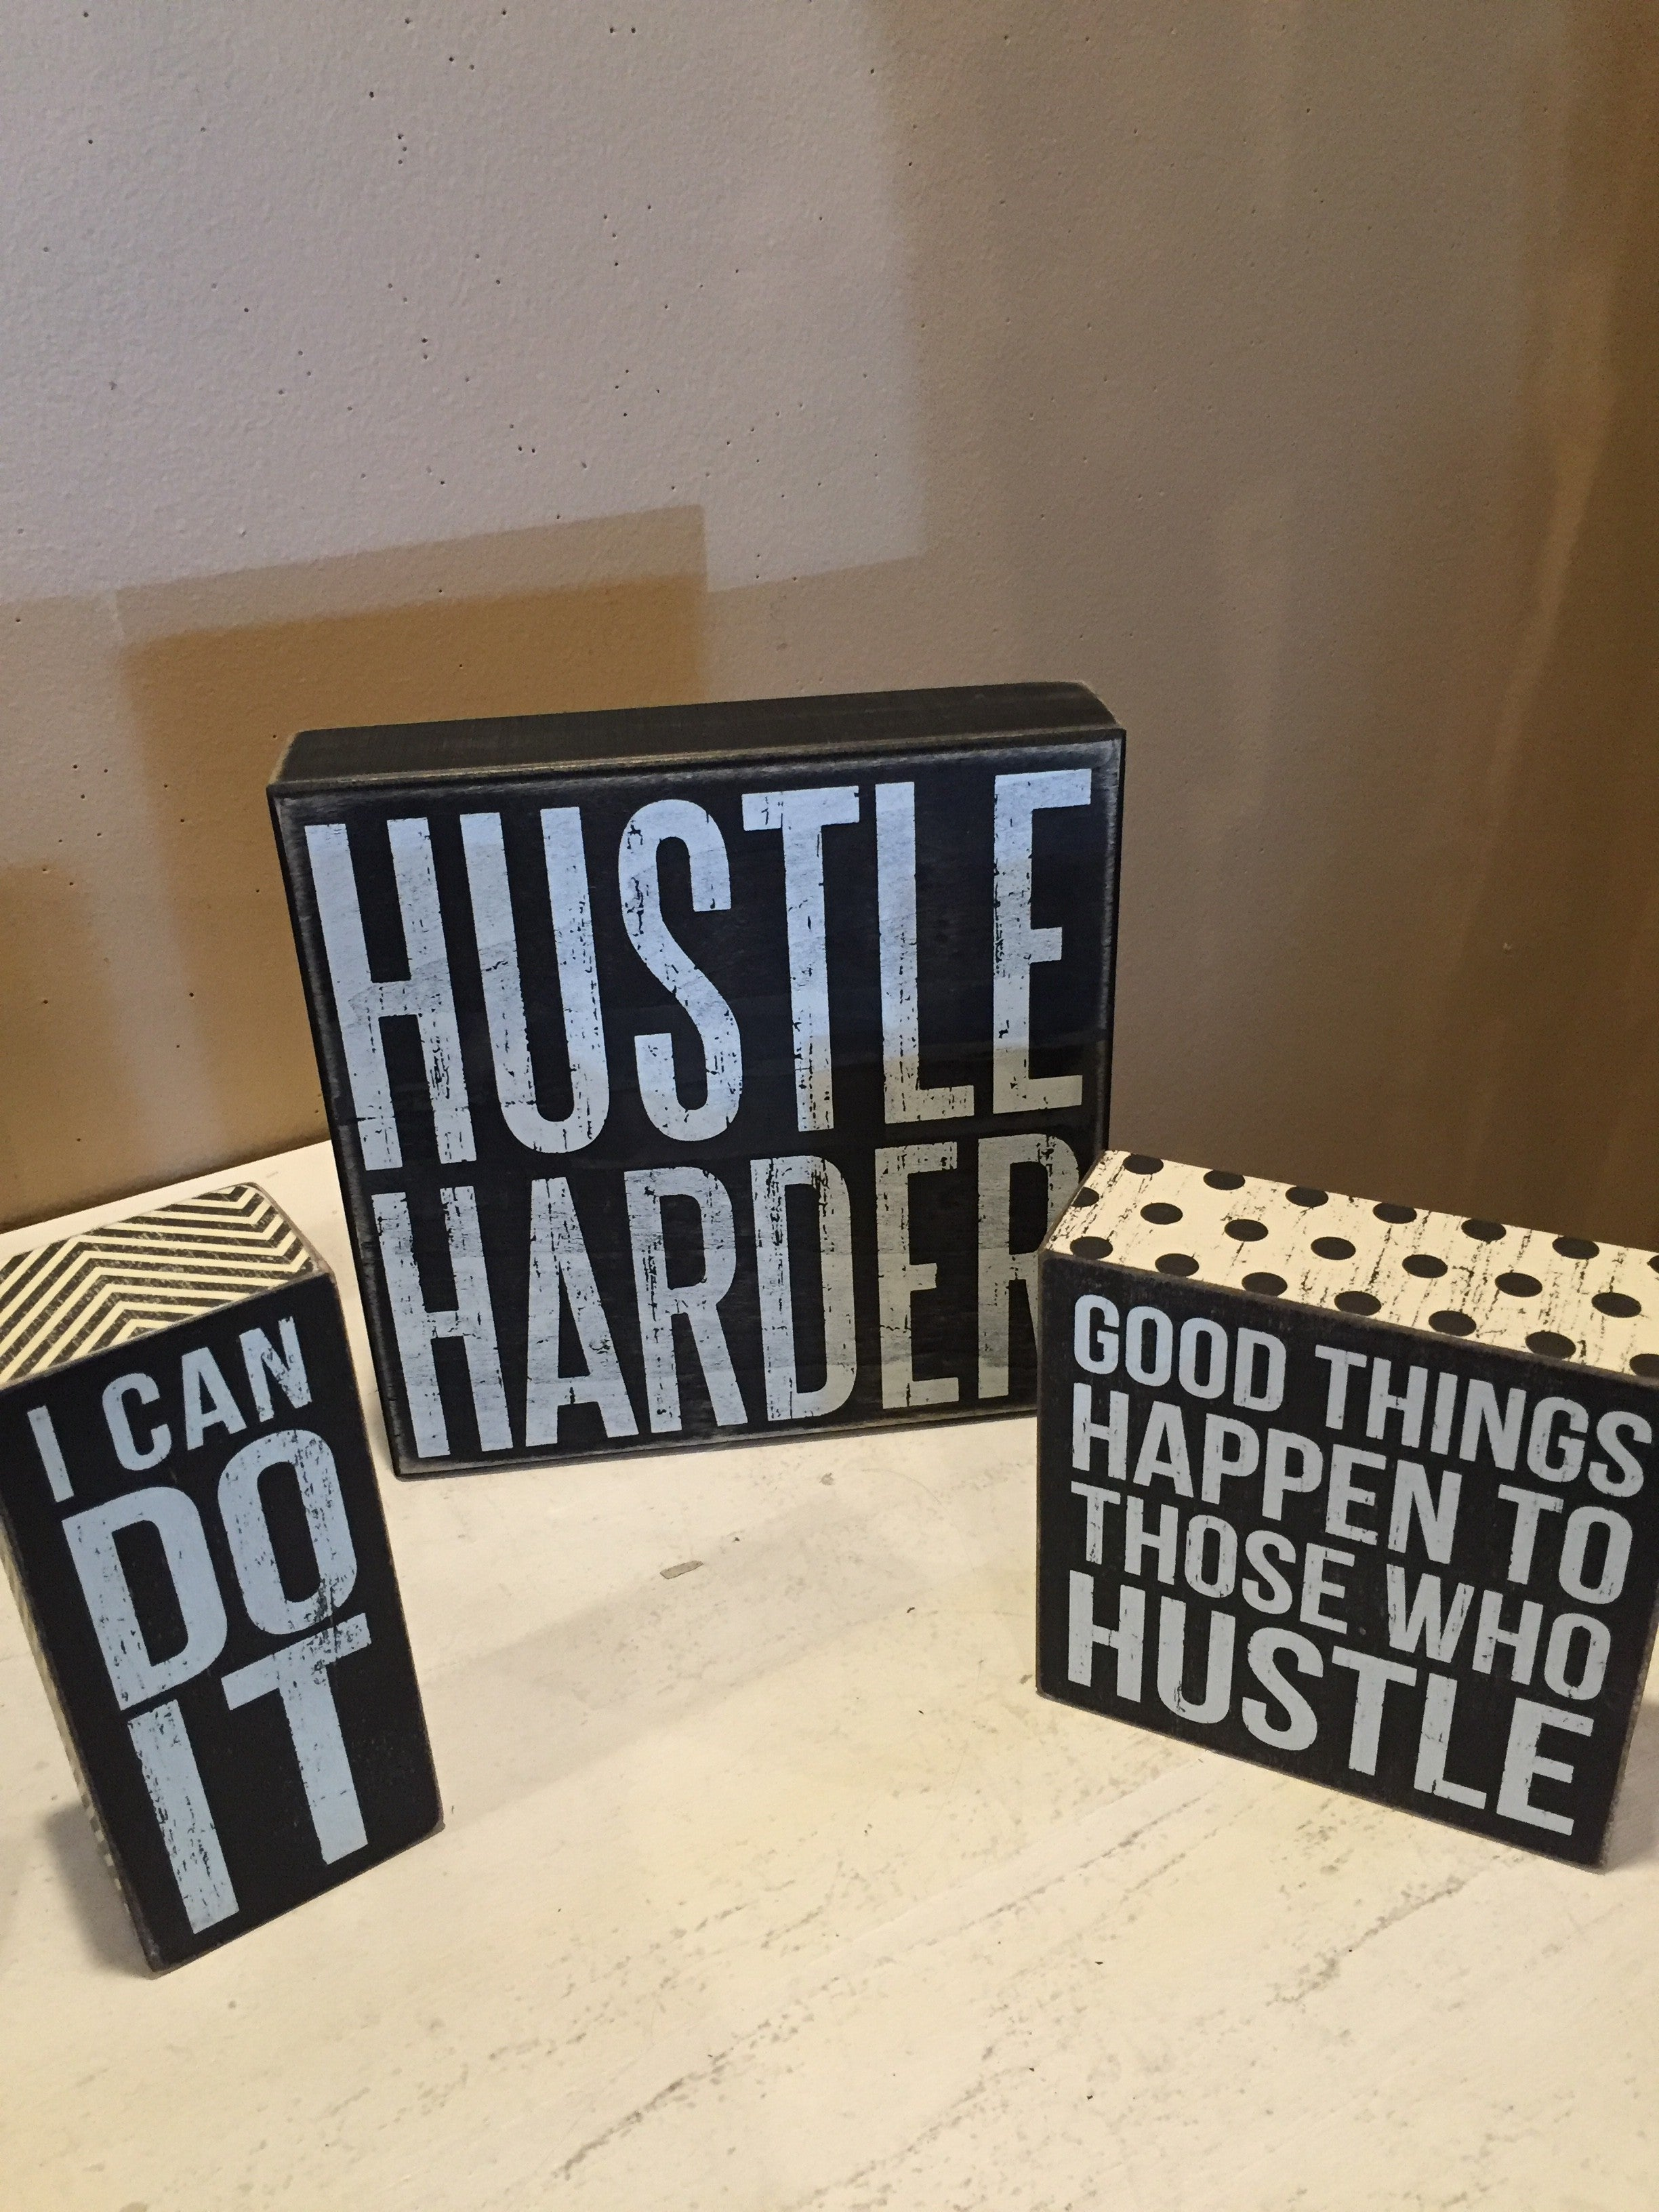 How about some encouragement for the grad who's heading to college or a new job? Hustle! Hustle harder!